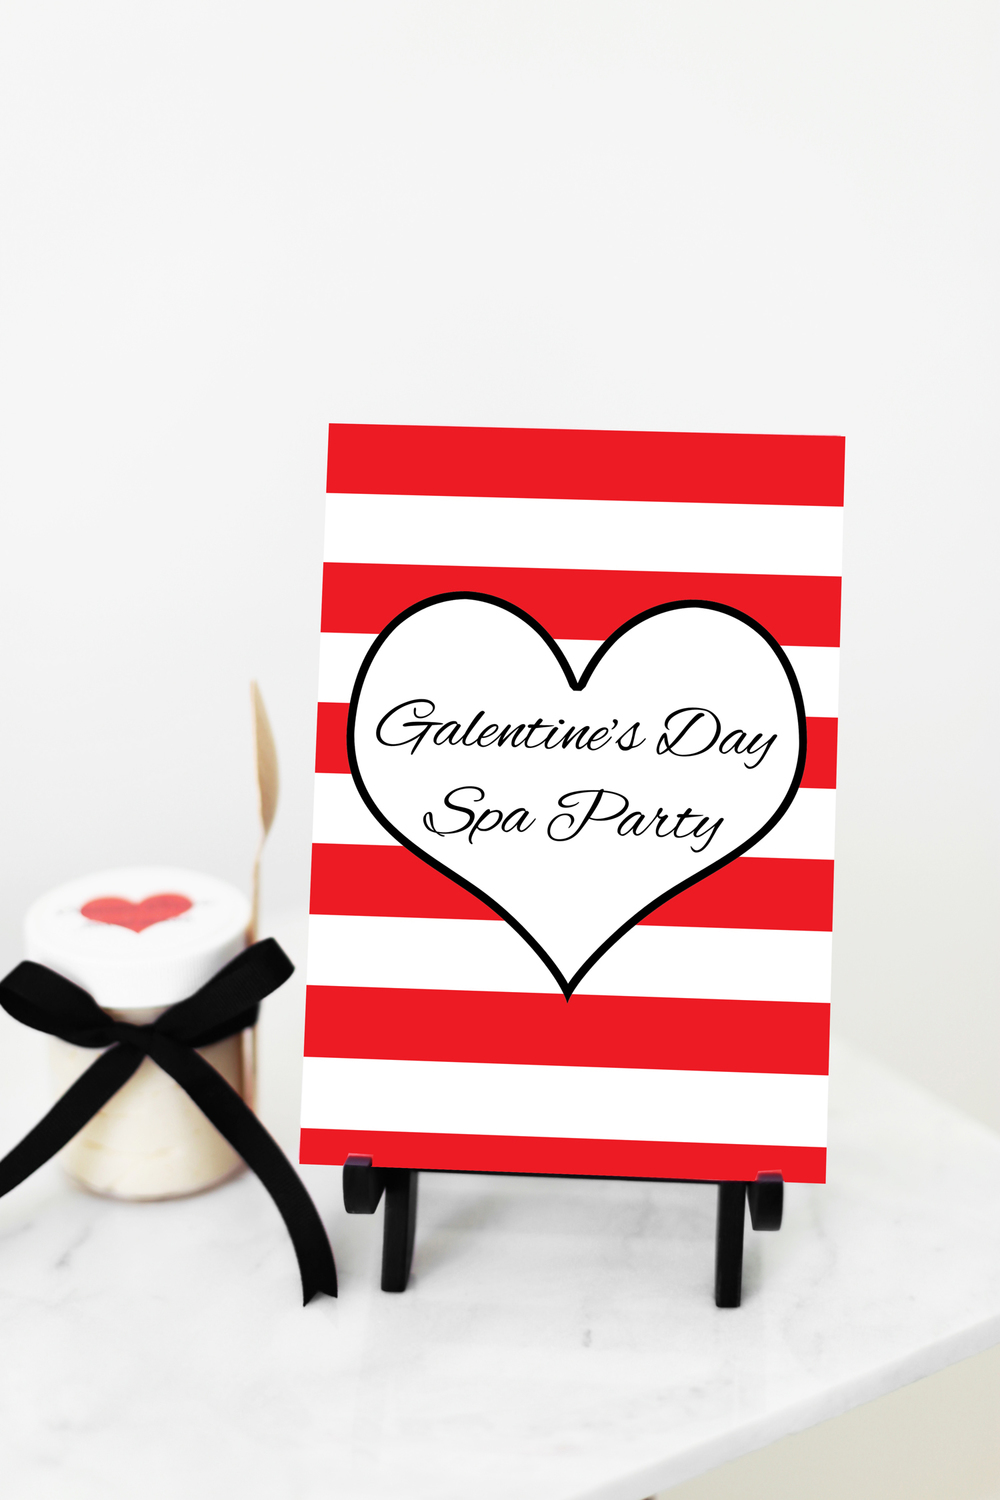 printable Galentine's Day party sign